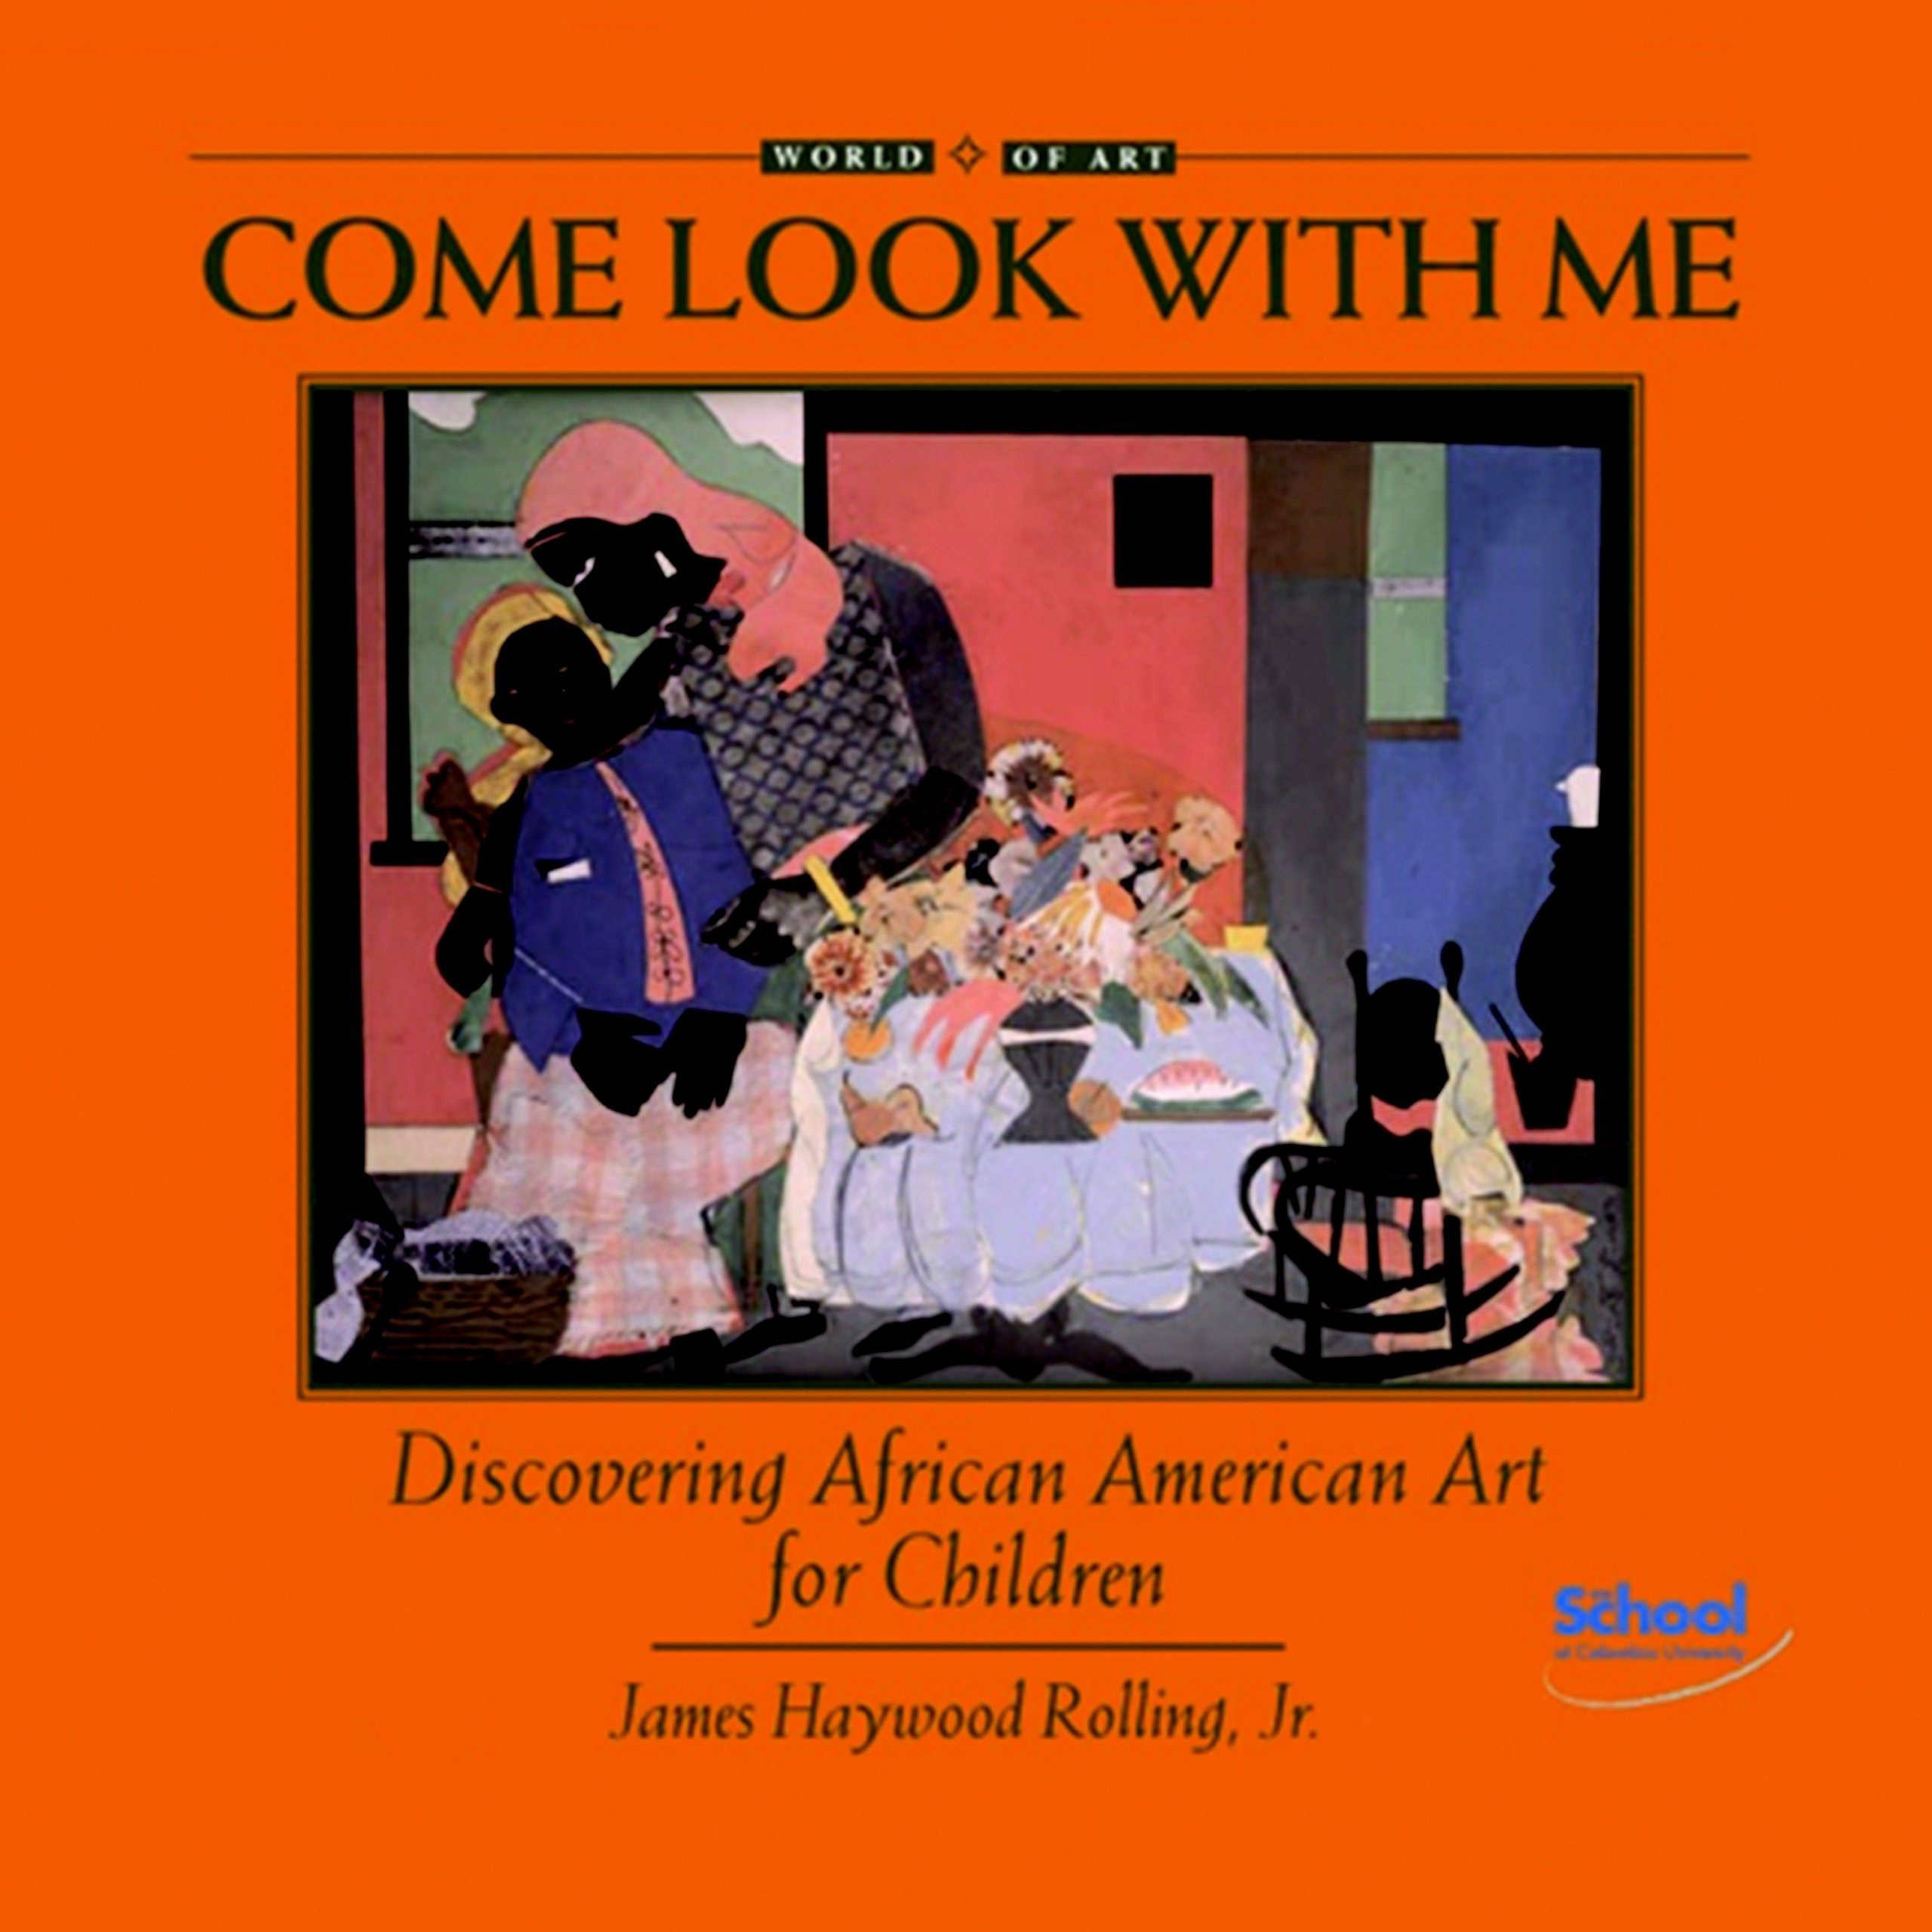 Discovering African American Art for Children (Come Look With Me) by Brand: Charlesbridge (Image #1)